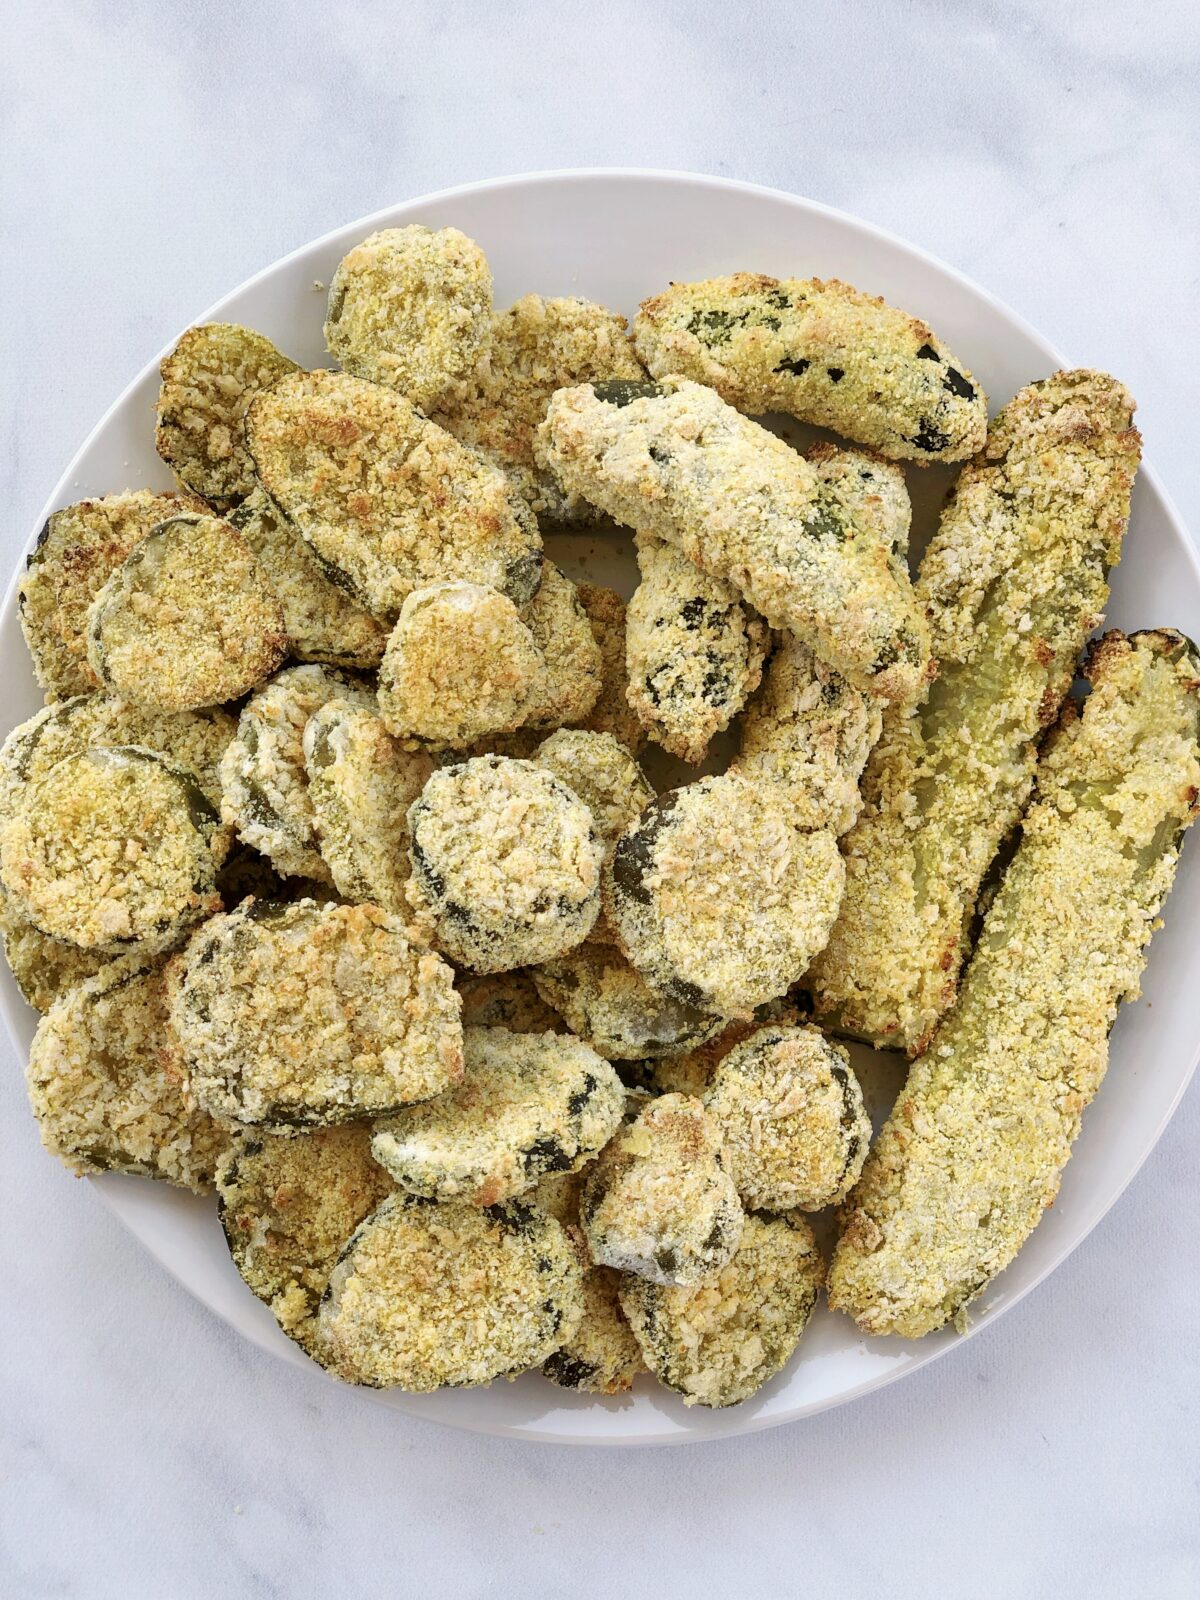 Vegan Air Fryer Fried Pickles are amazingly quick and easy. They are perfectly crisp using less than 10 completely dairy-free and egg-free ingredients